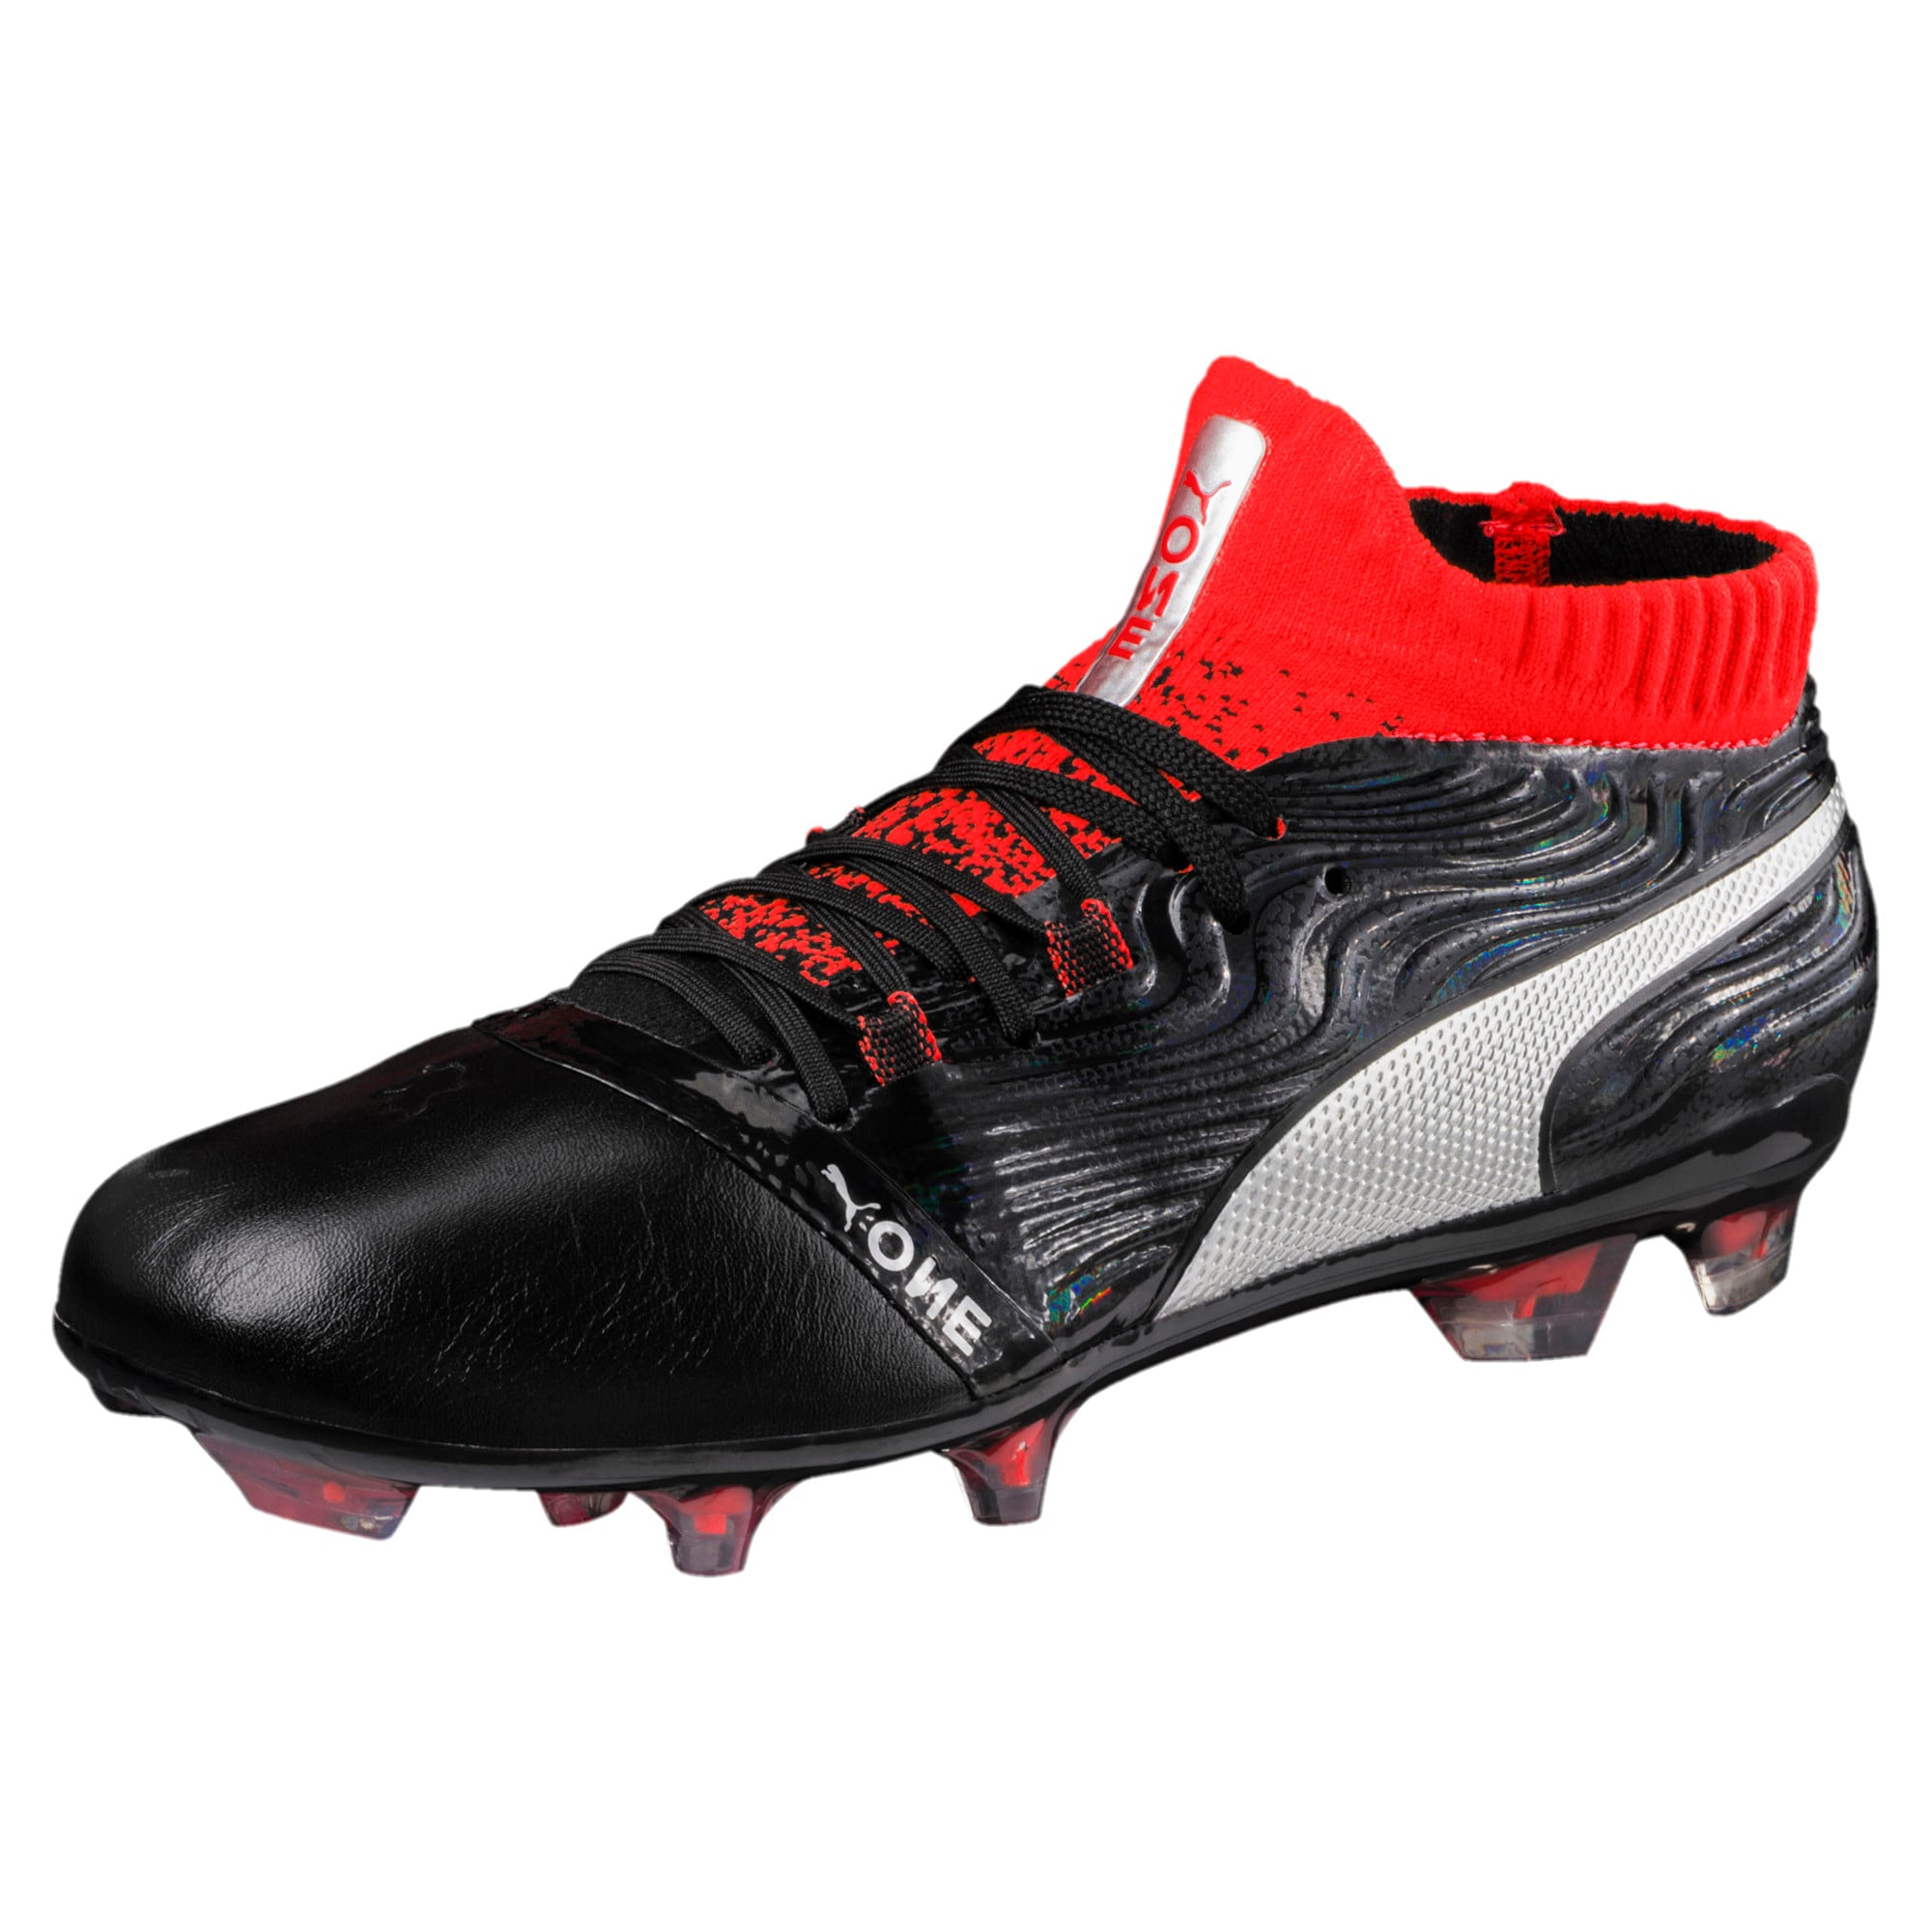 Thumbnail 1 of ONE 18.1 FG Soccer Cleats JR, Black-Silver-Red, medium